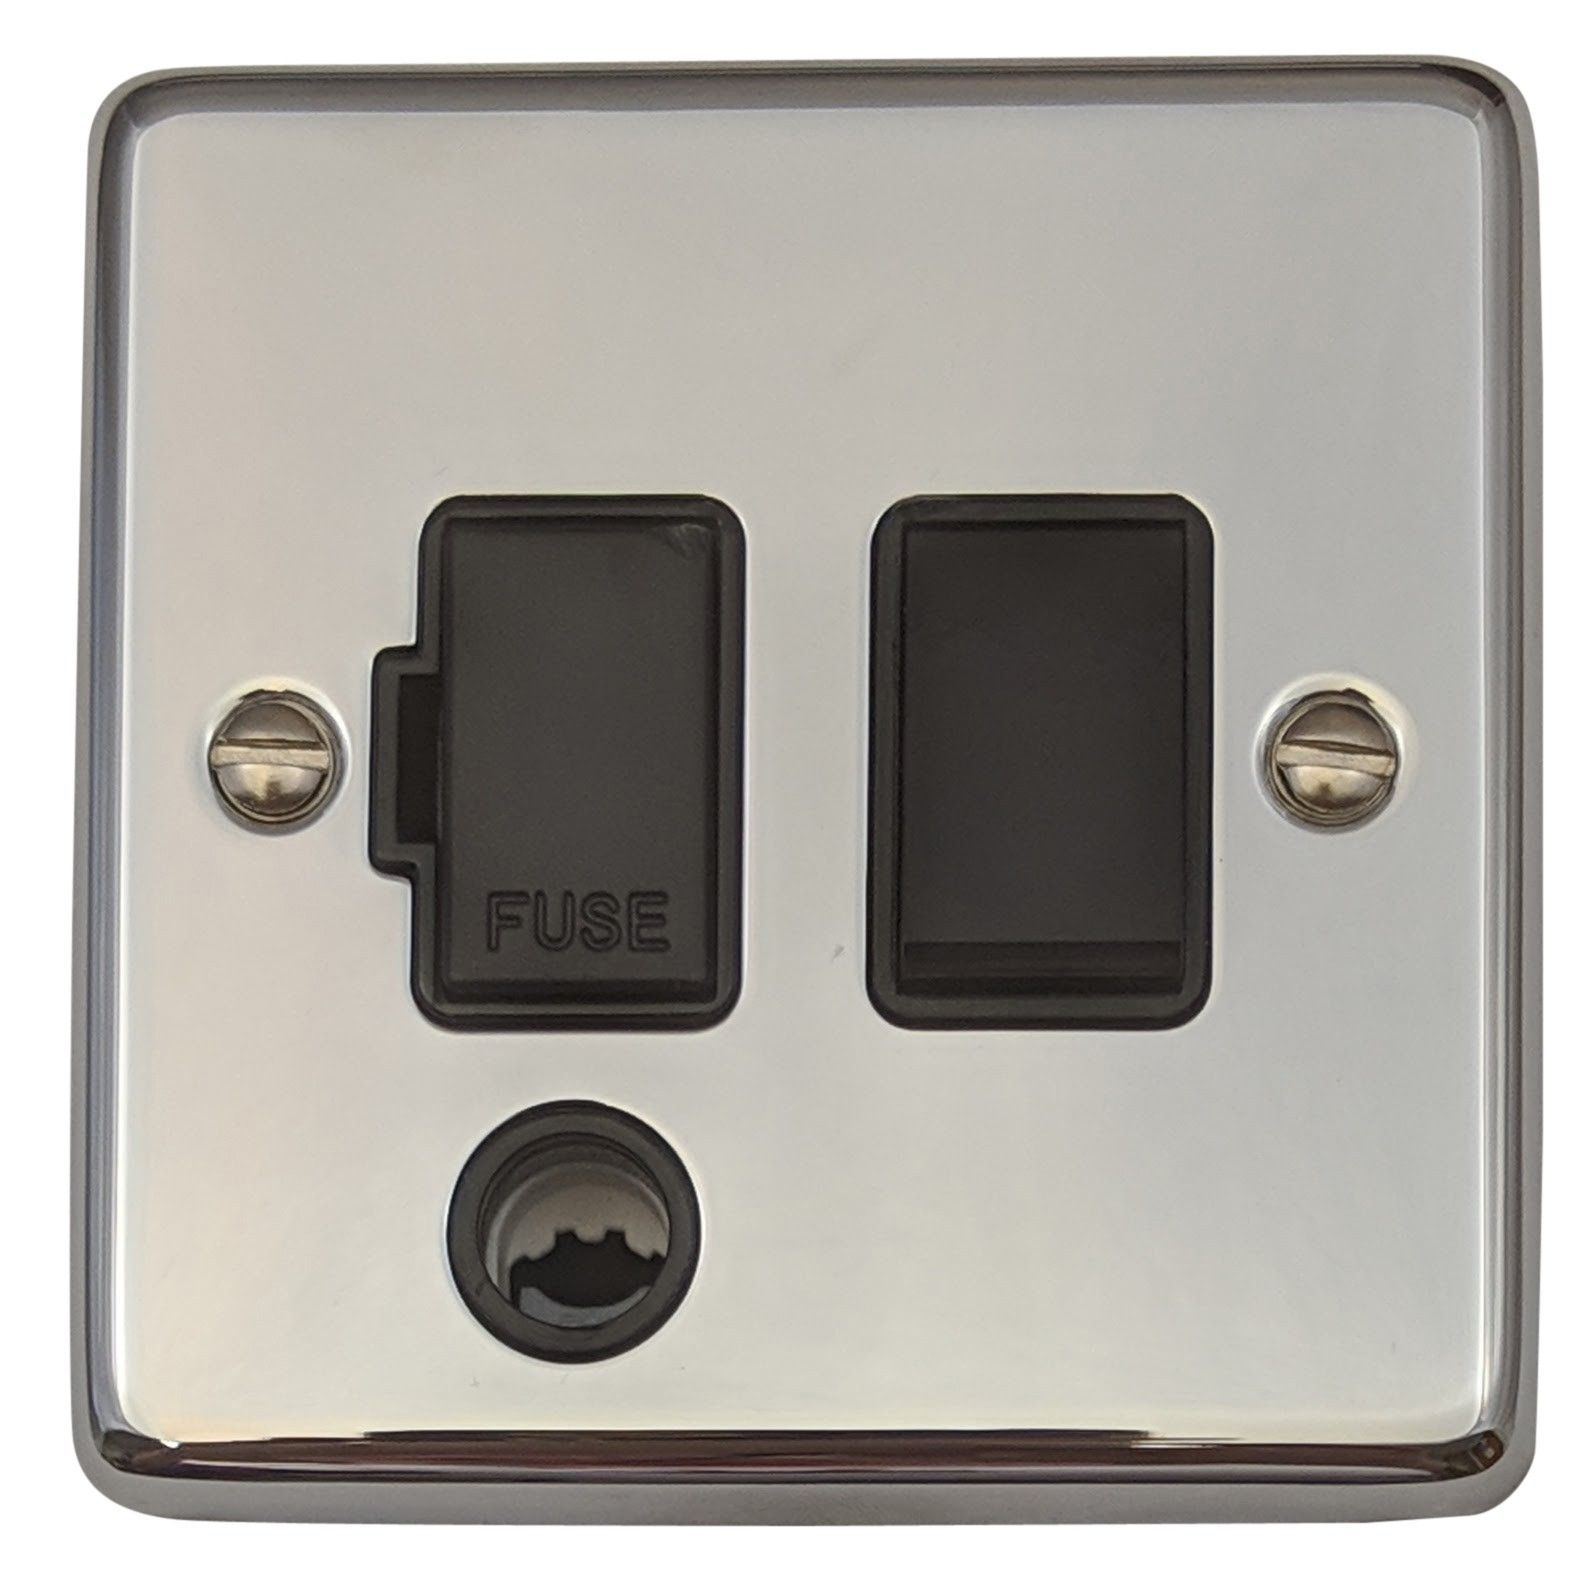 G&H CC56B Standard Plate Polished Chrome 1 Gang Fused Spur 13A Switched & Flex Outlet